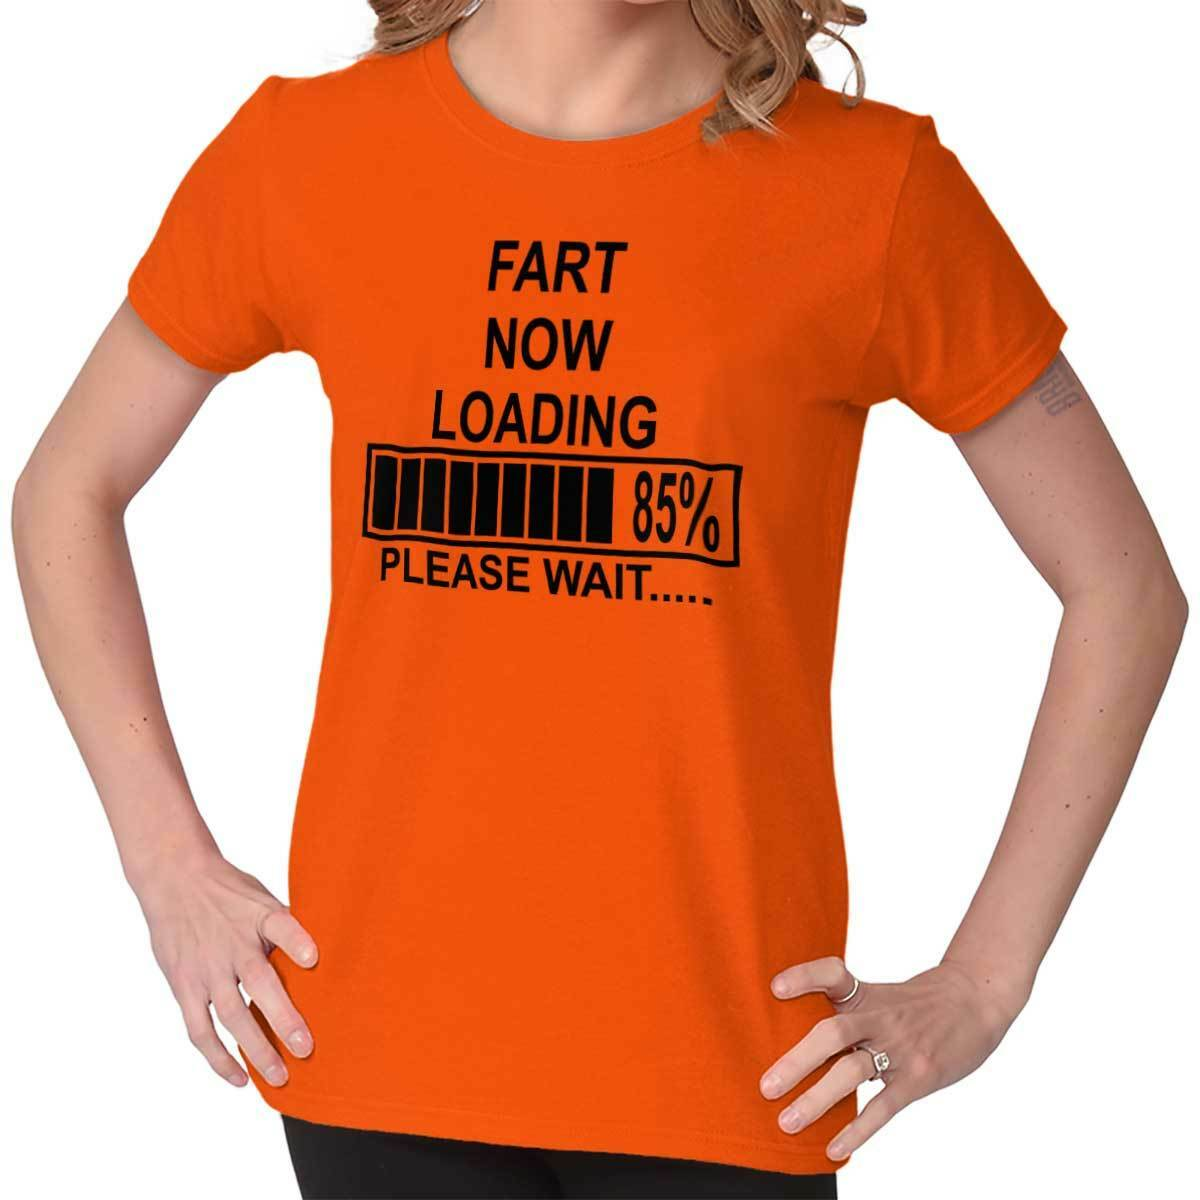 FART, T-SHIRT FART NOW LOADING FUNNY T-SHIRT fathers day GIFT BEST XS-3XL